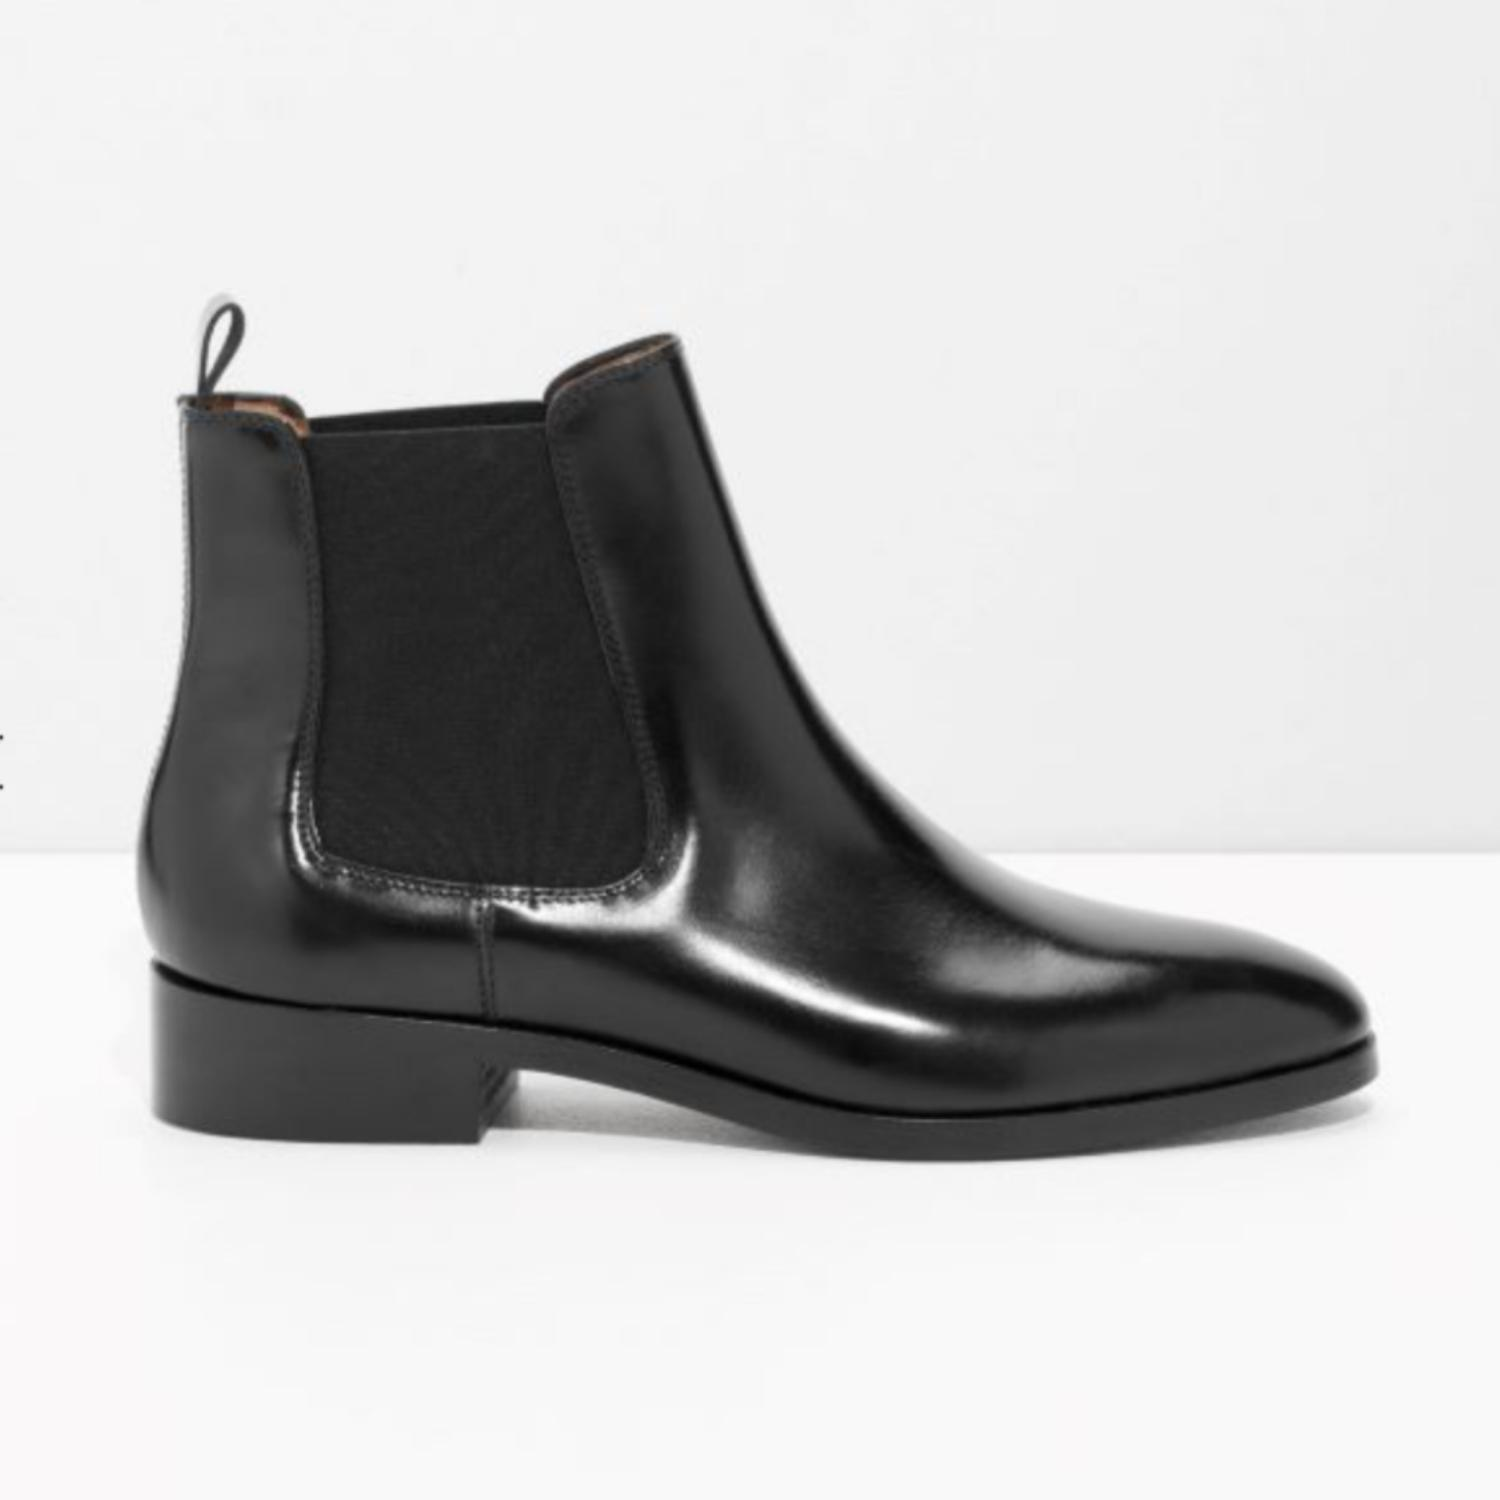 & OTHER STORIES Chelsea Leather Boots j7pV2J7